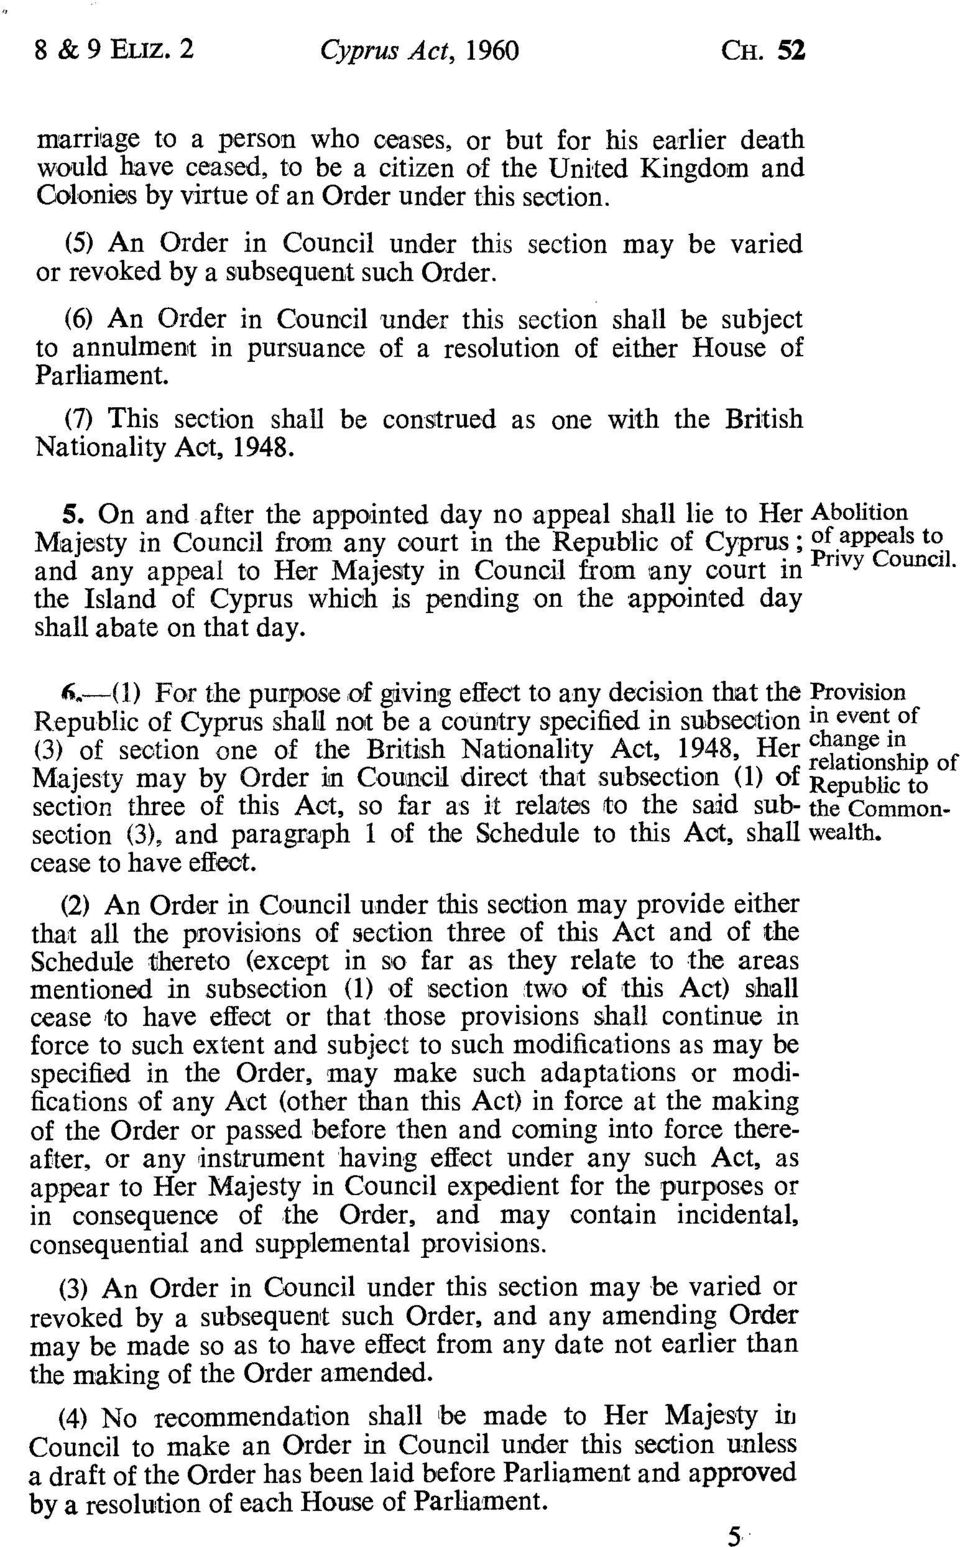 (5) An Order in Council under this section may be varied or revoked by a subsequent such Order.